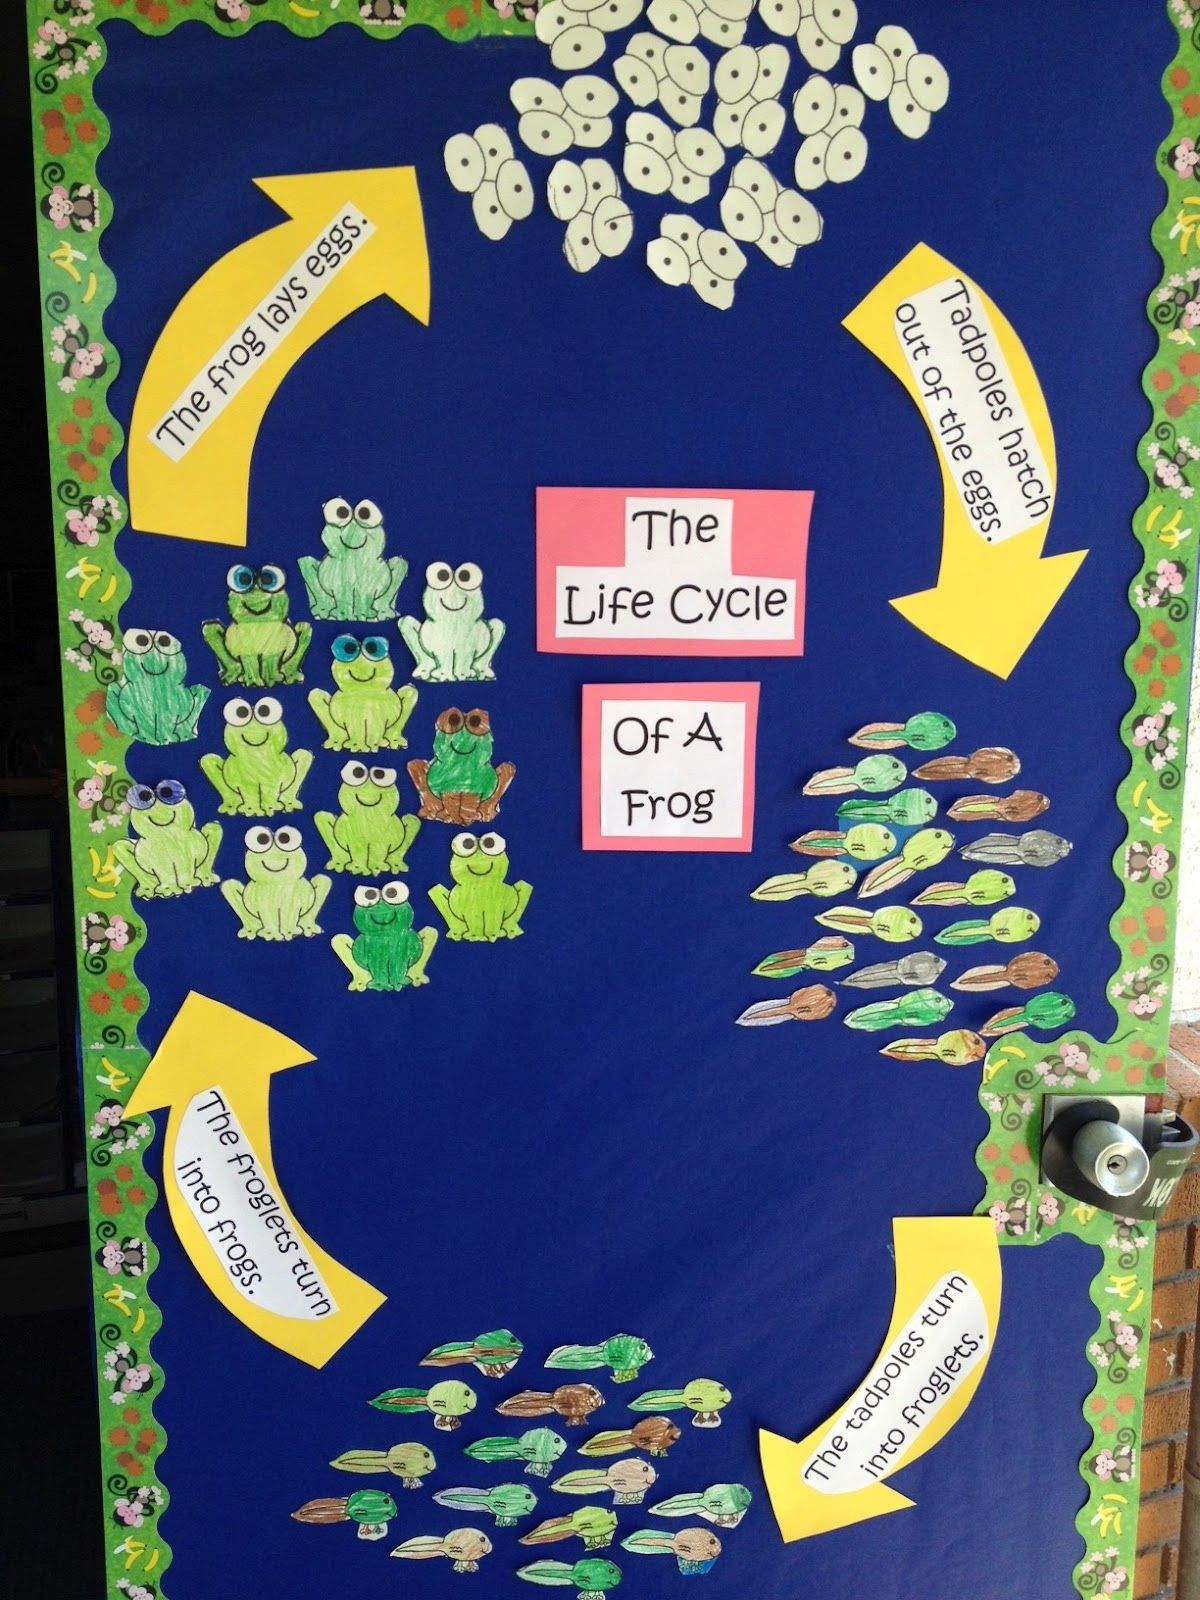 Apples And Abc S Life Cycle Of A Frog And Adorable Frog Book